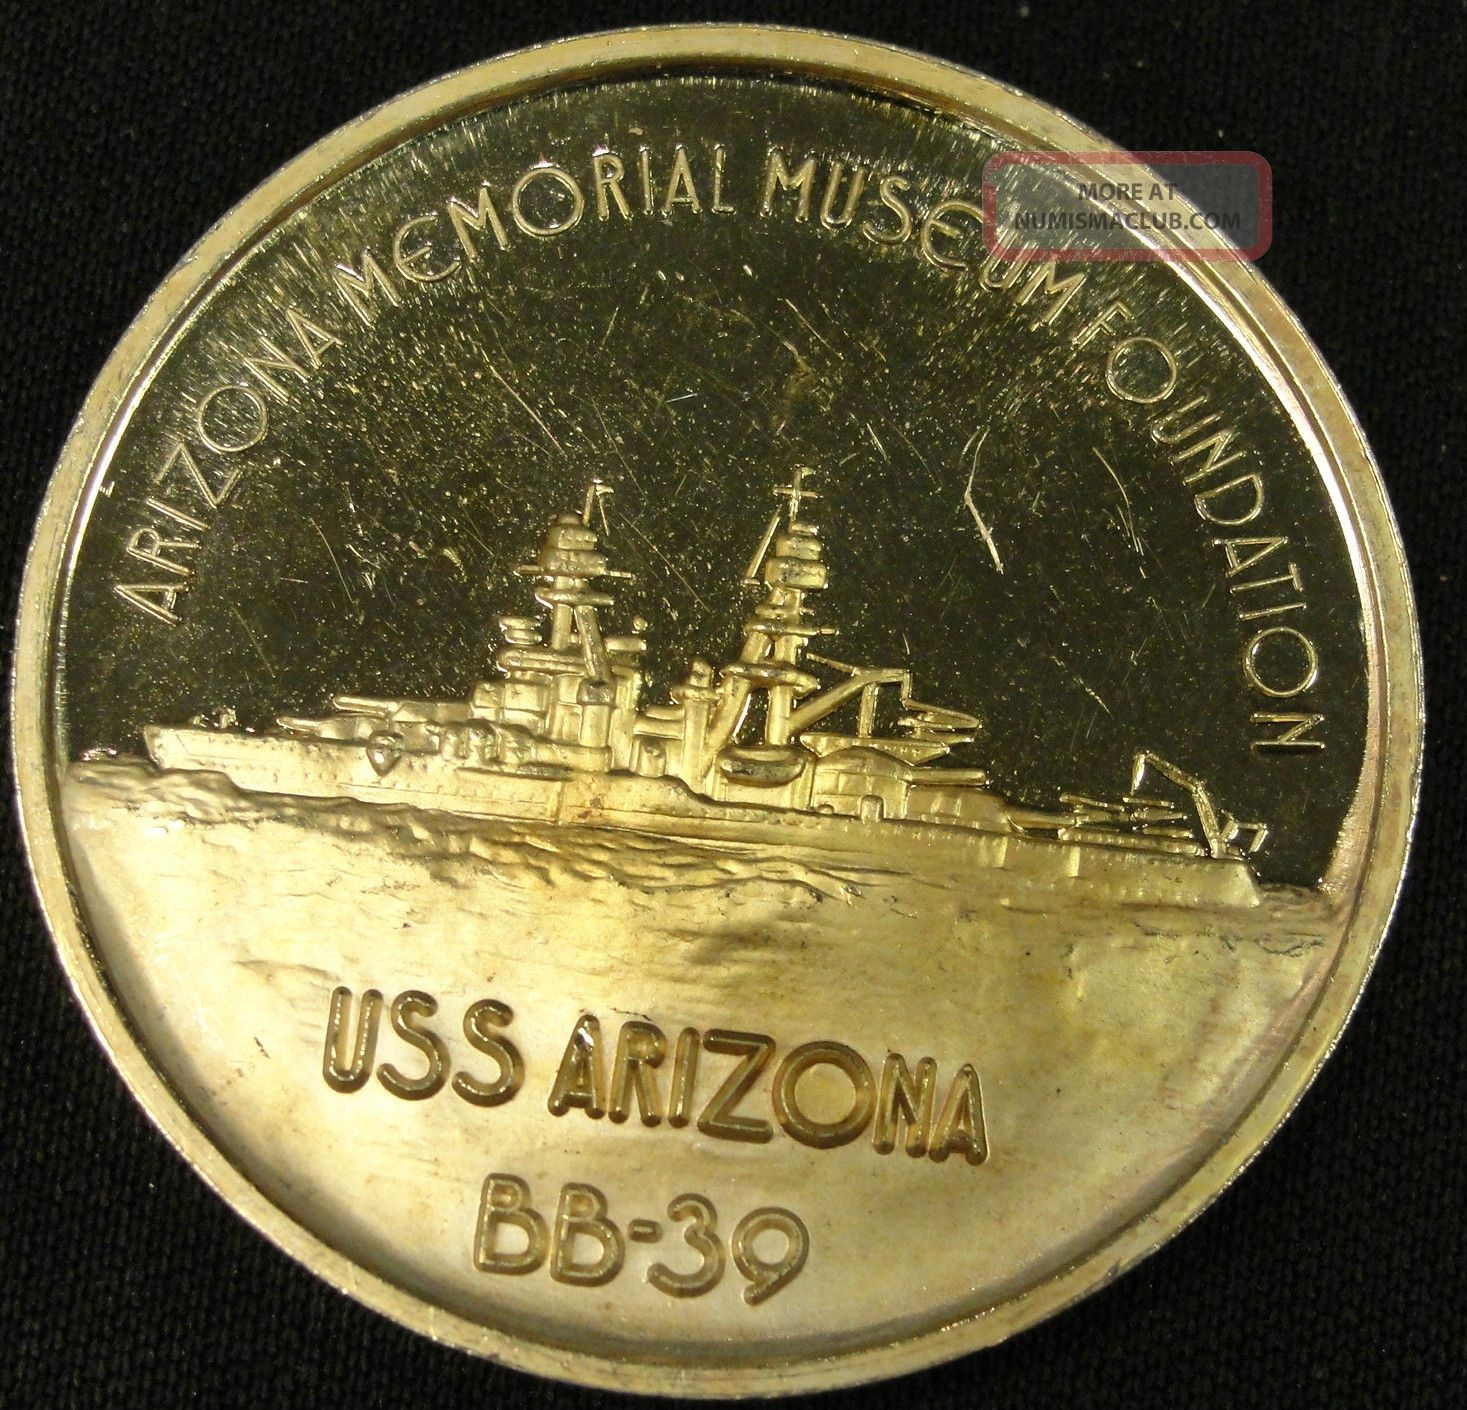 Rare Honolulu Pearl Harbor Silver Round 999 1oz Bullion Ph4t